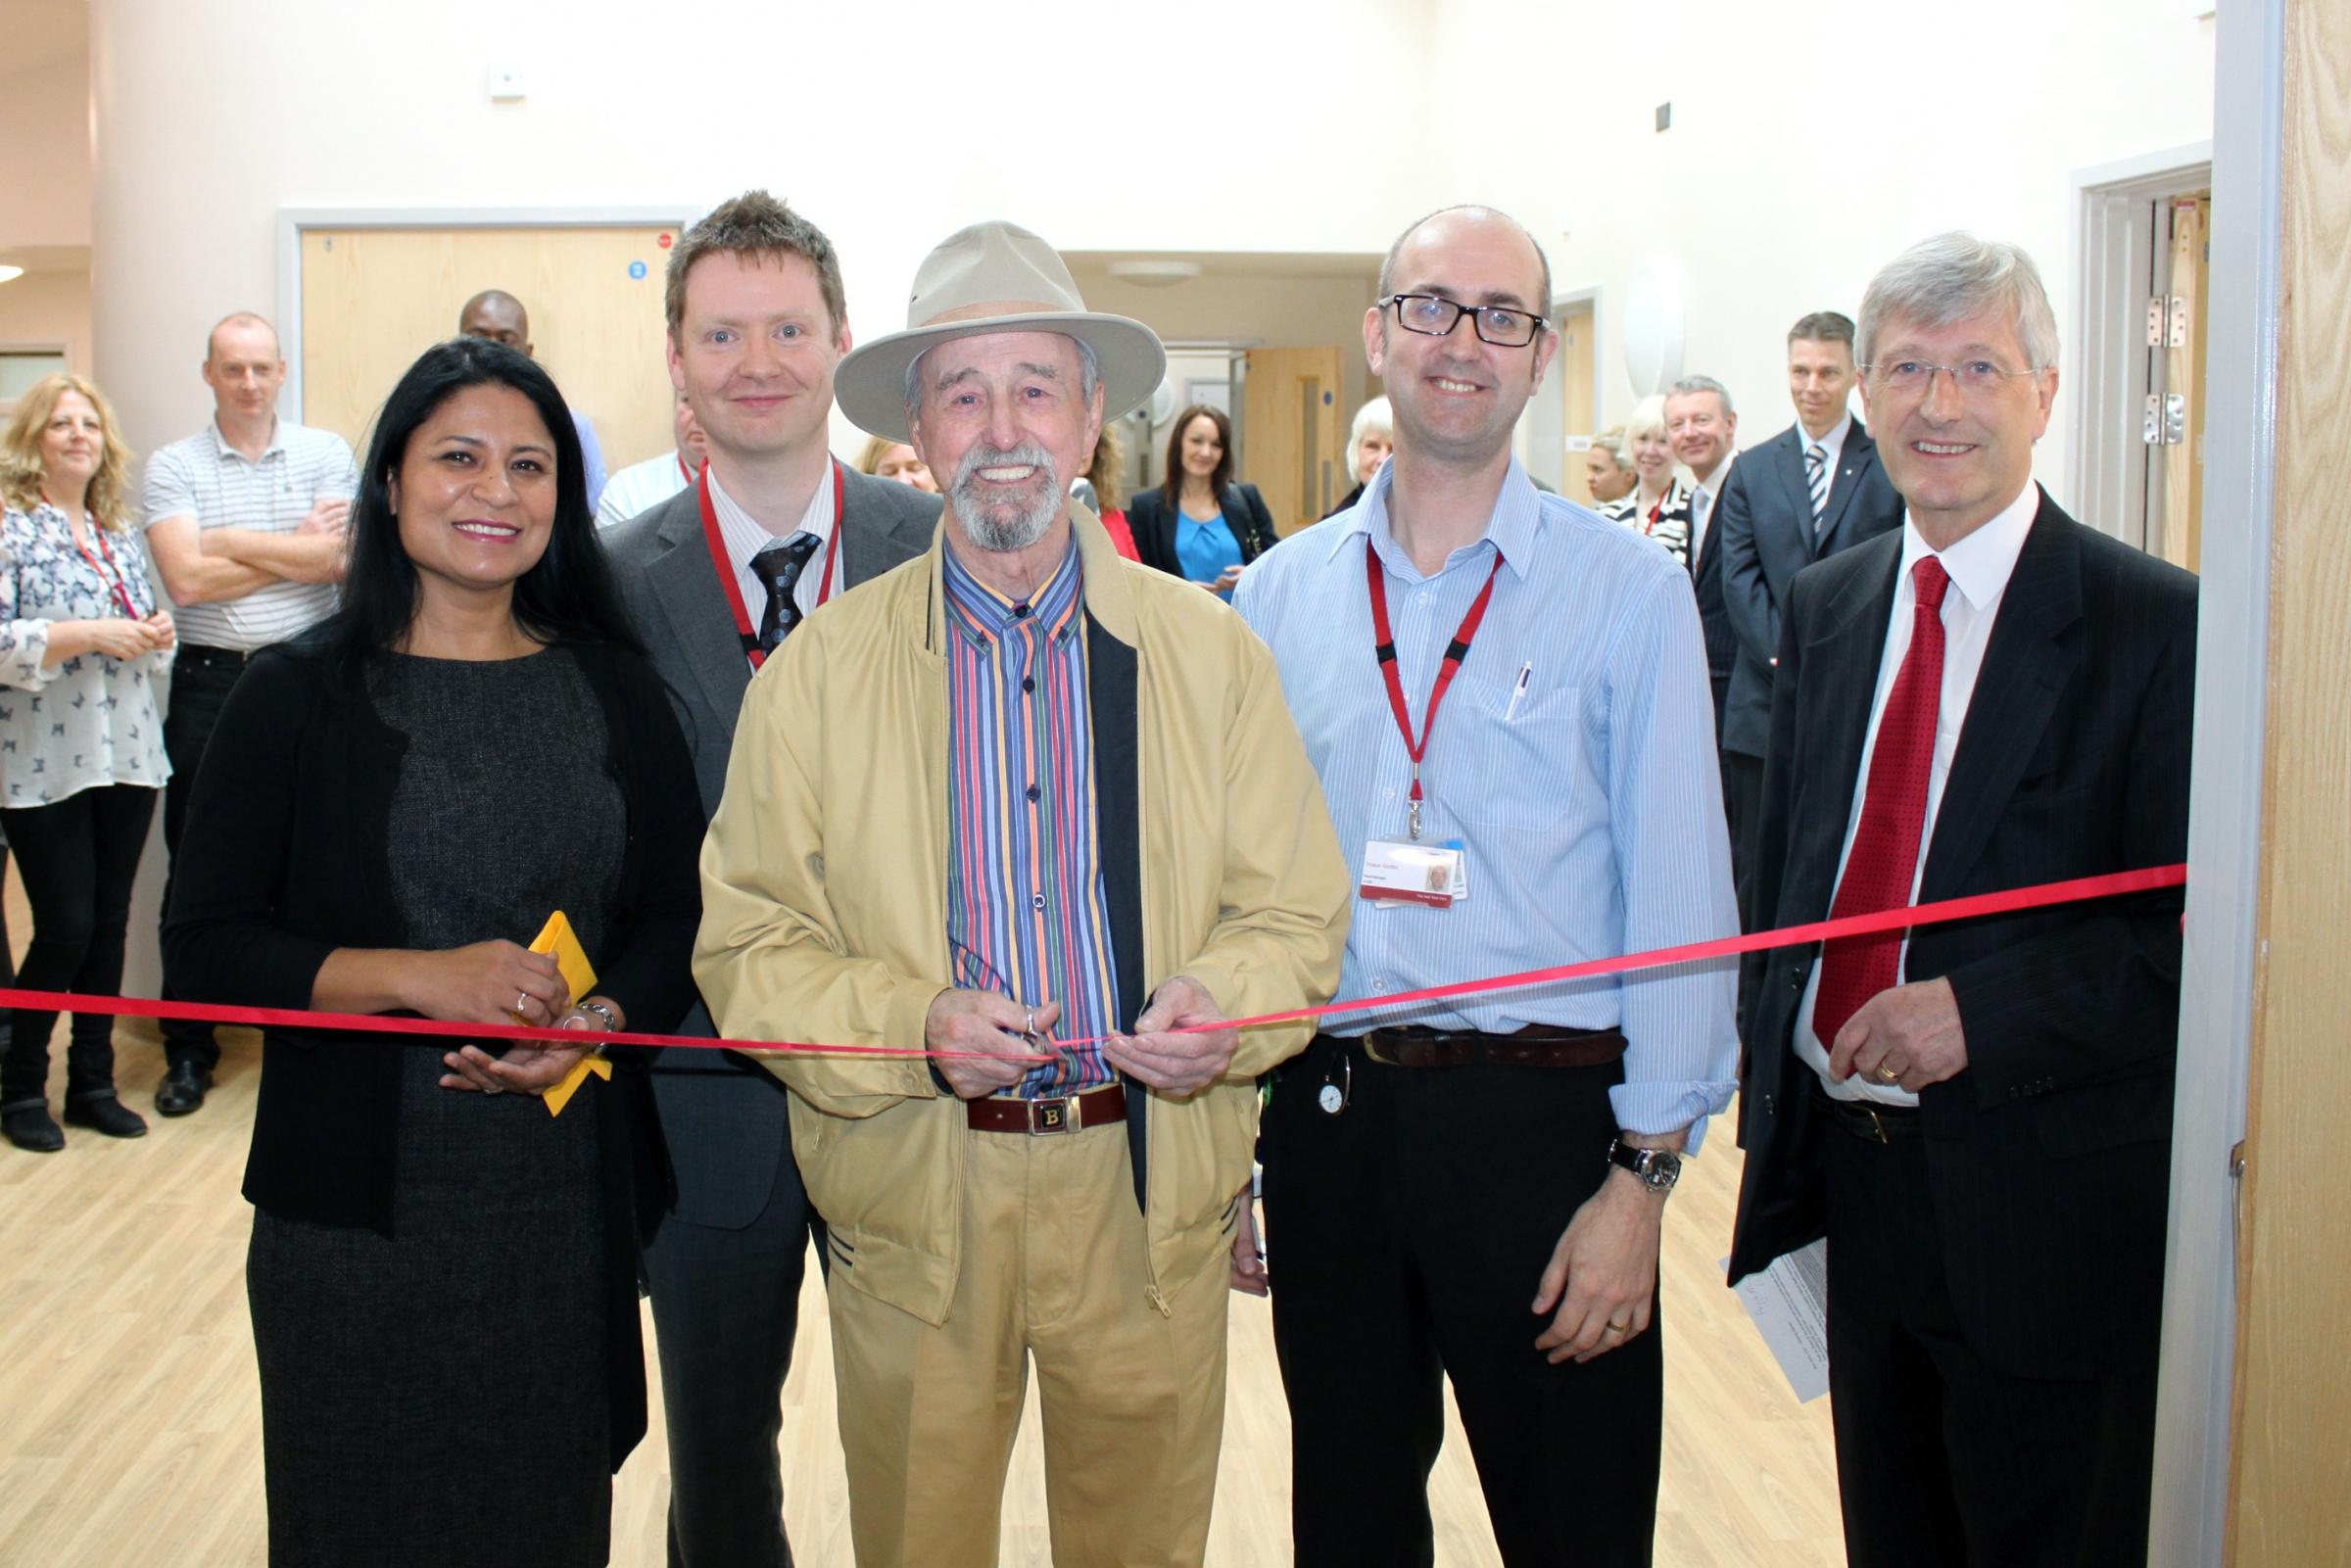 A new purpose-built health facility has opened in Airedale. Pic shows, from the left, consultant pyschiatrist  Shubhra Singh, building surveyor Phill Pyrah, Older People's Involvement Group member Brian Proctor, ward manager Shaun Griffin and trust ch